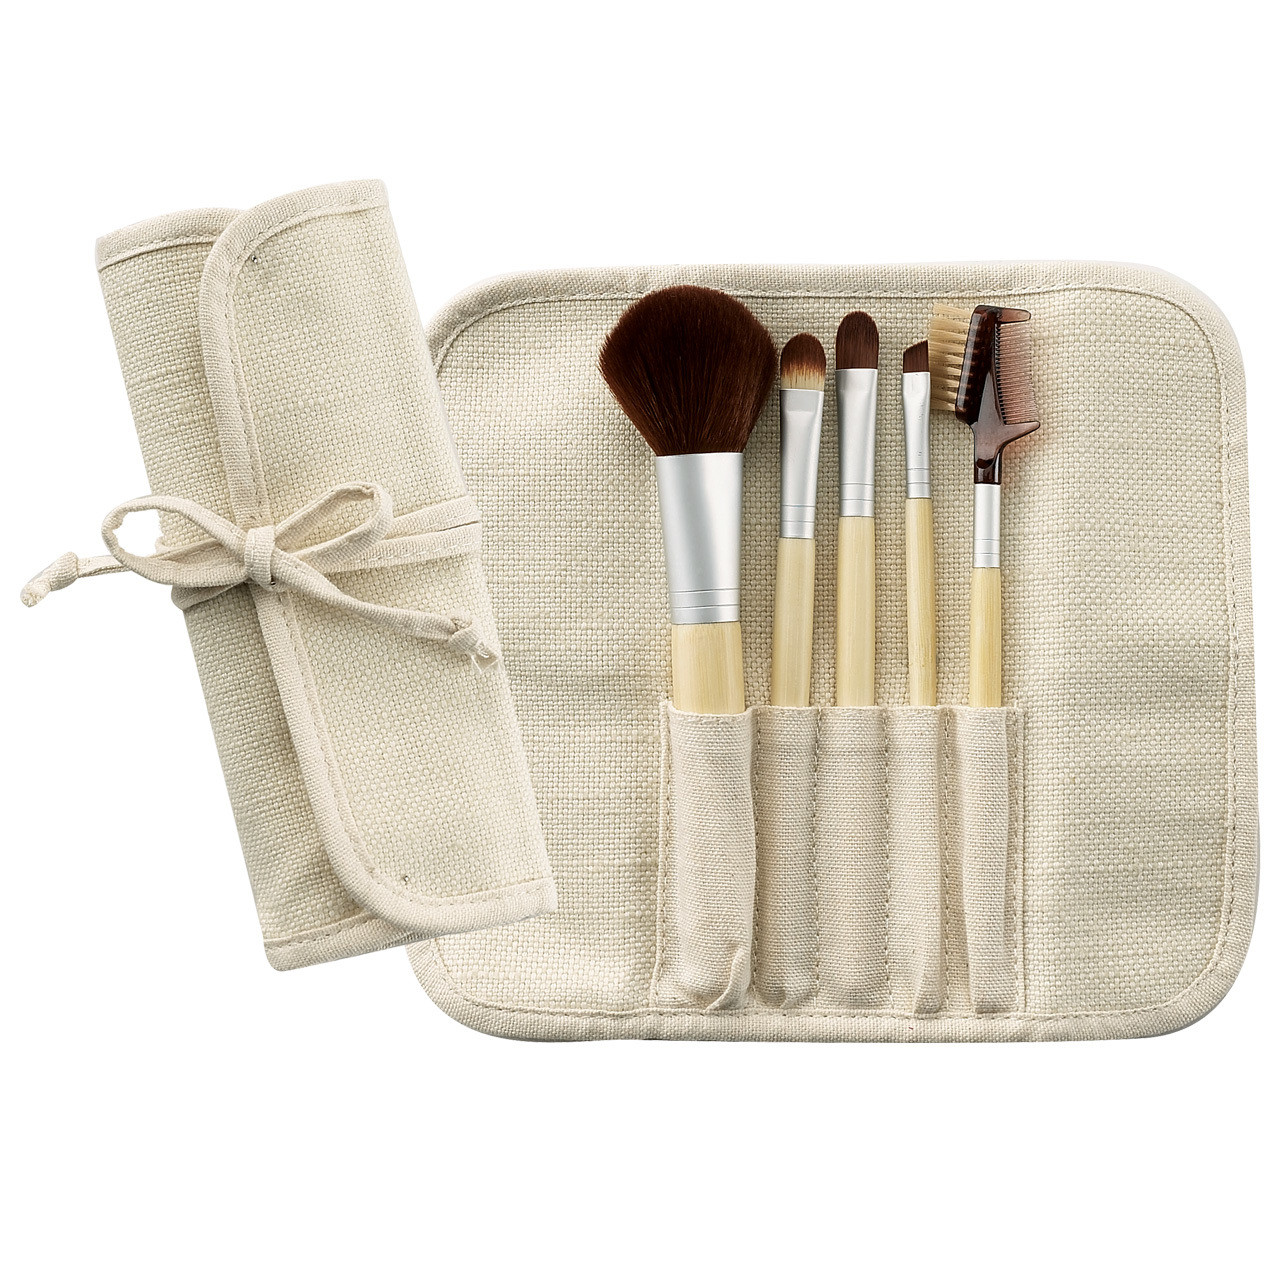 CALA BAMBOO BRUSH SET 5PCS 76410